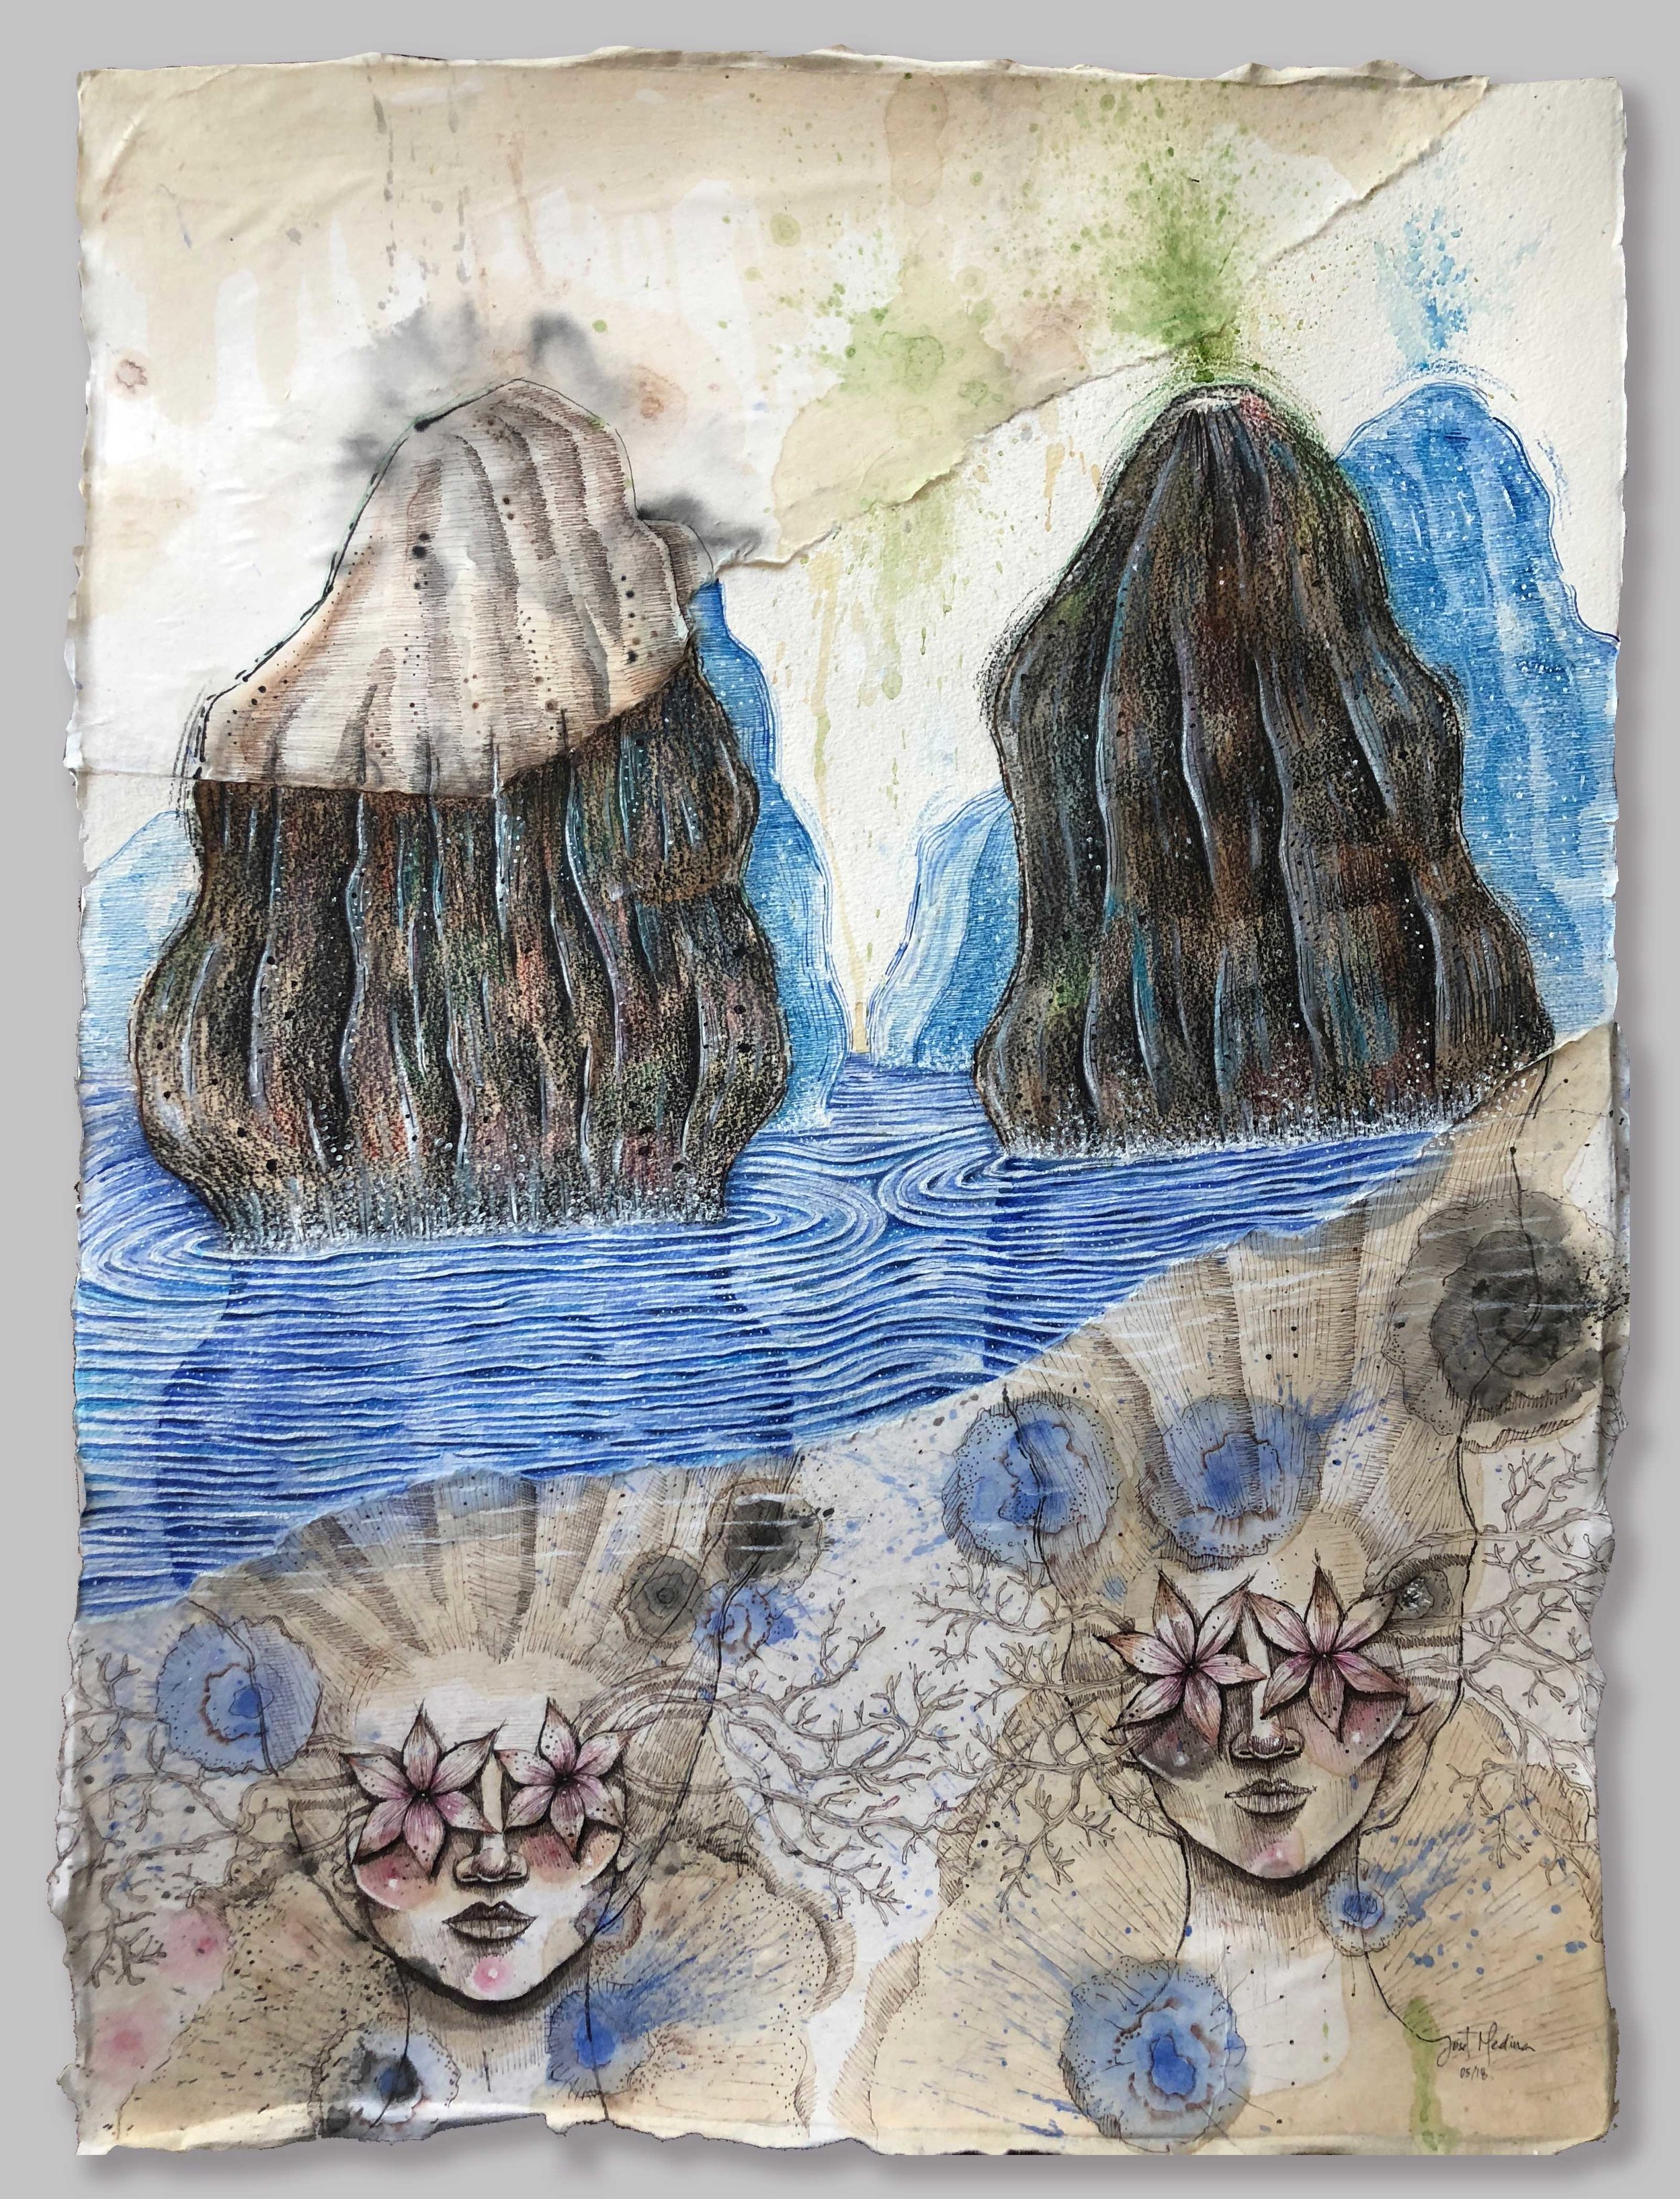 """A Bay of Goddesses (2018)  Acrylic, watercolor, ink and charcoal on paper  30 x 22 inches   """" I spent Christmas 2017 in Halong Bay Vietnam and this was the inspiration for this piece. It was mesmerizing to me to contemplate the beauty of the landscape, it was an surreal experience, which made me wonder and imagine stories about a submerged world, a magical world where reality and imagination blends."""""""